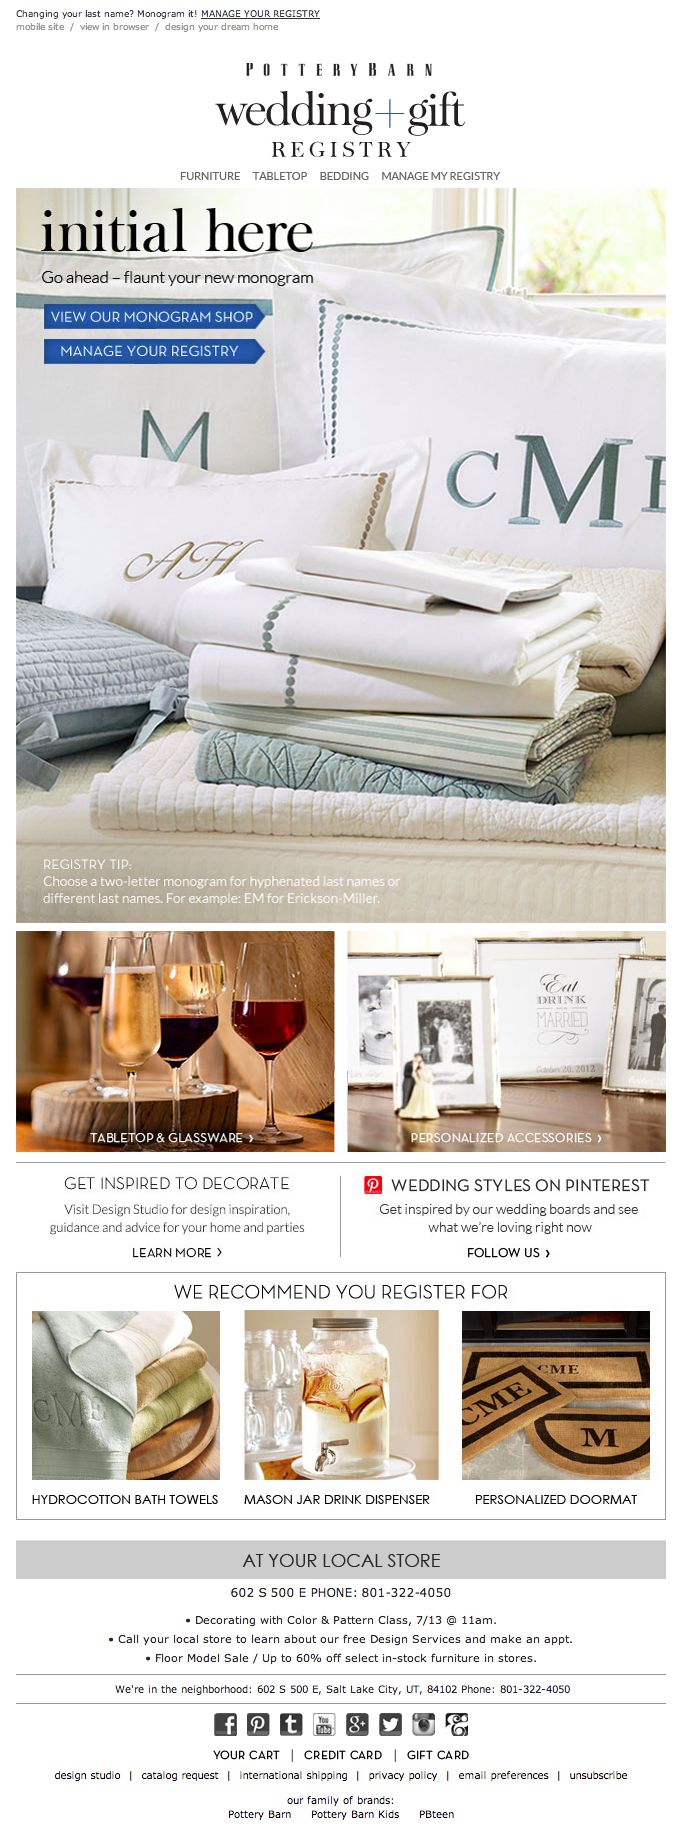 pottery barn wedding registry email 2014